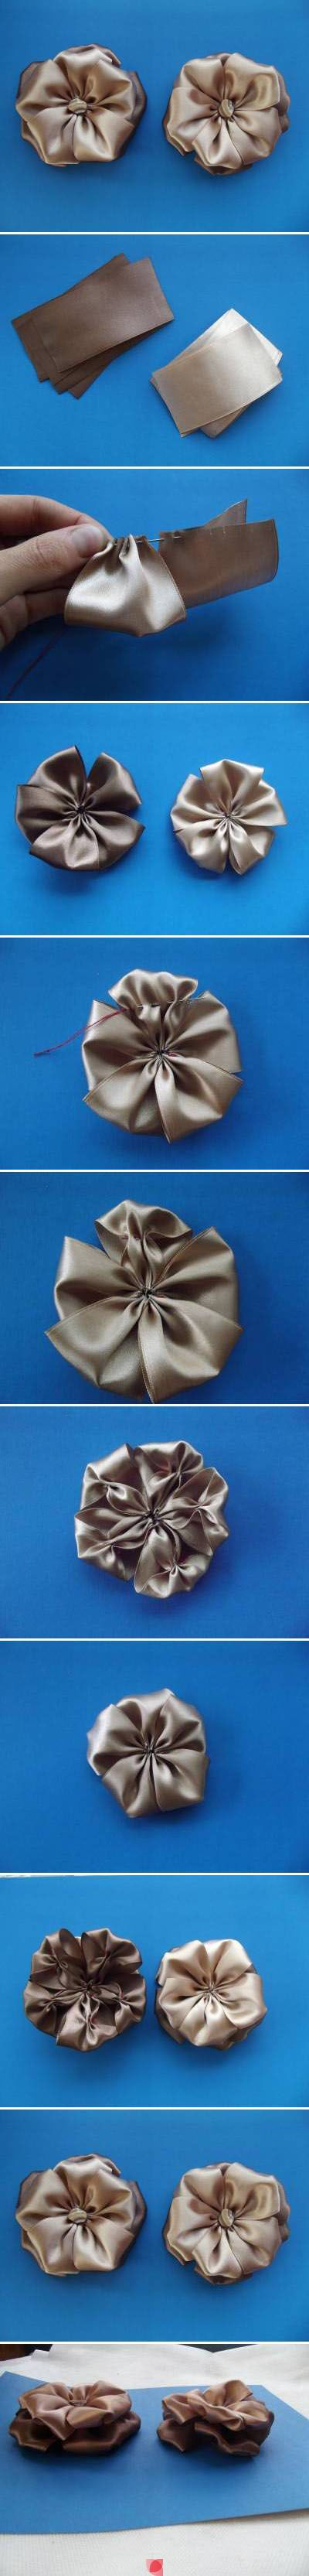 ribbon flower - bjl